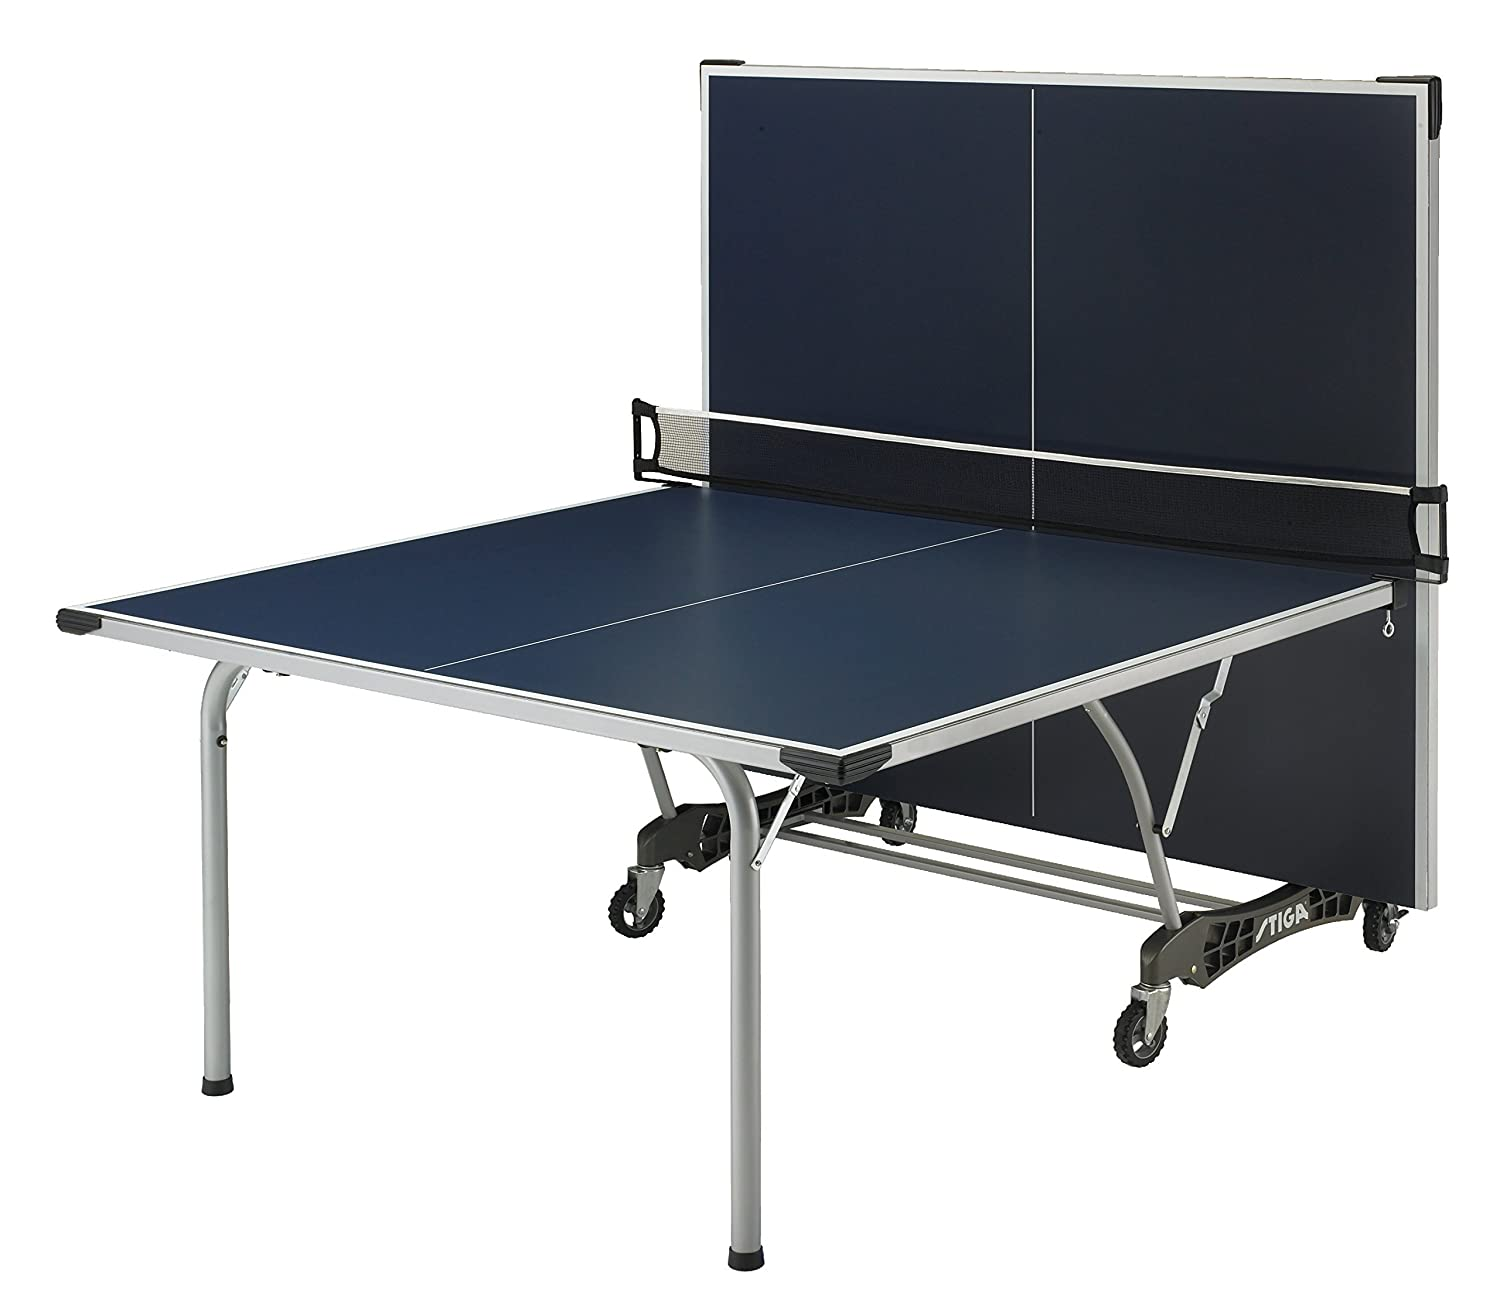 Amazon.com : STIGA Coronado Outdoor Table Tennis Table : Sports U0026 Outdoors